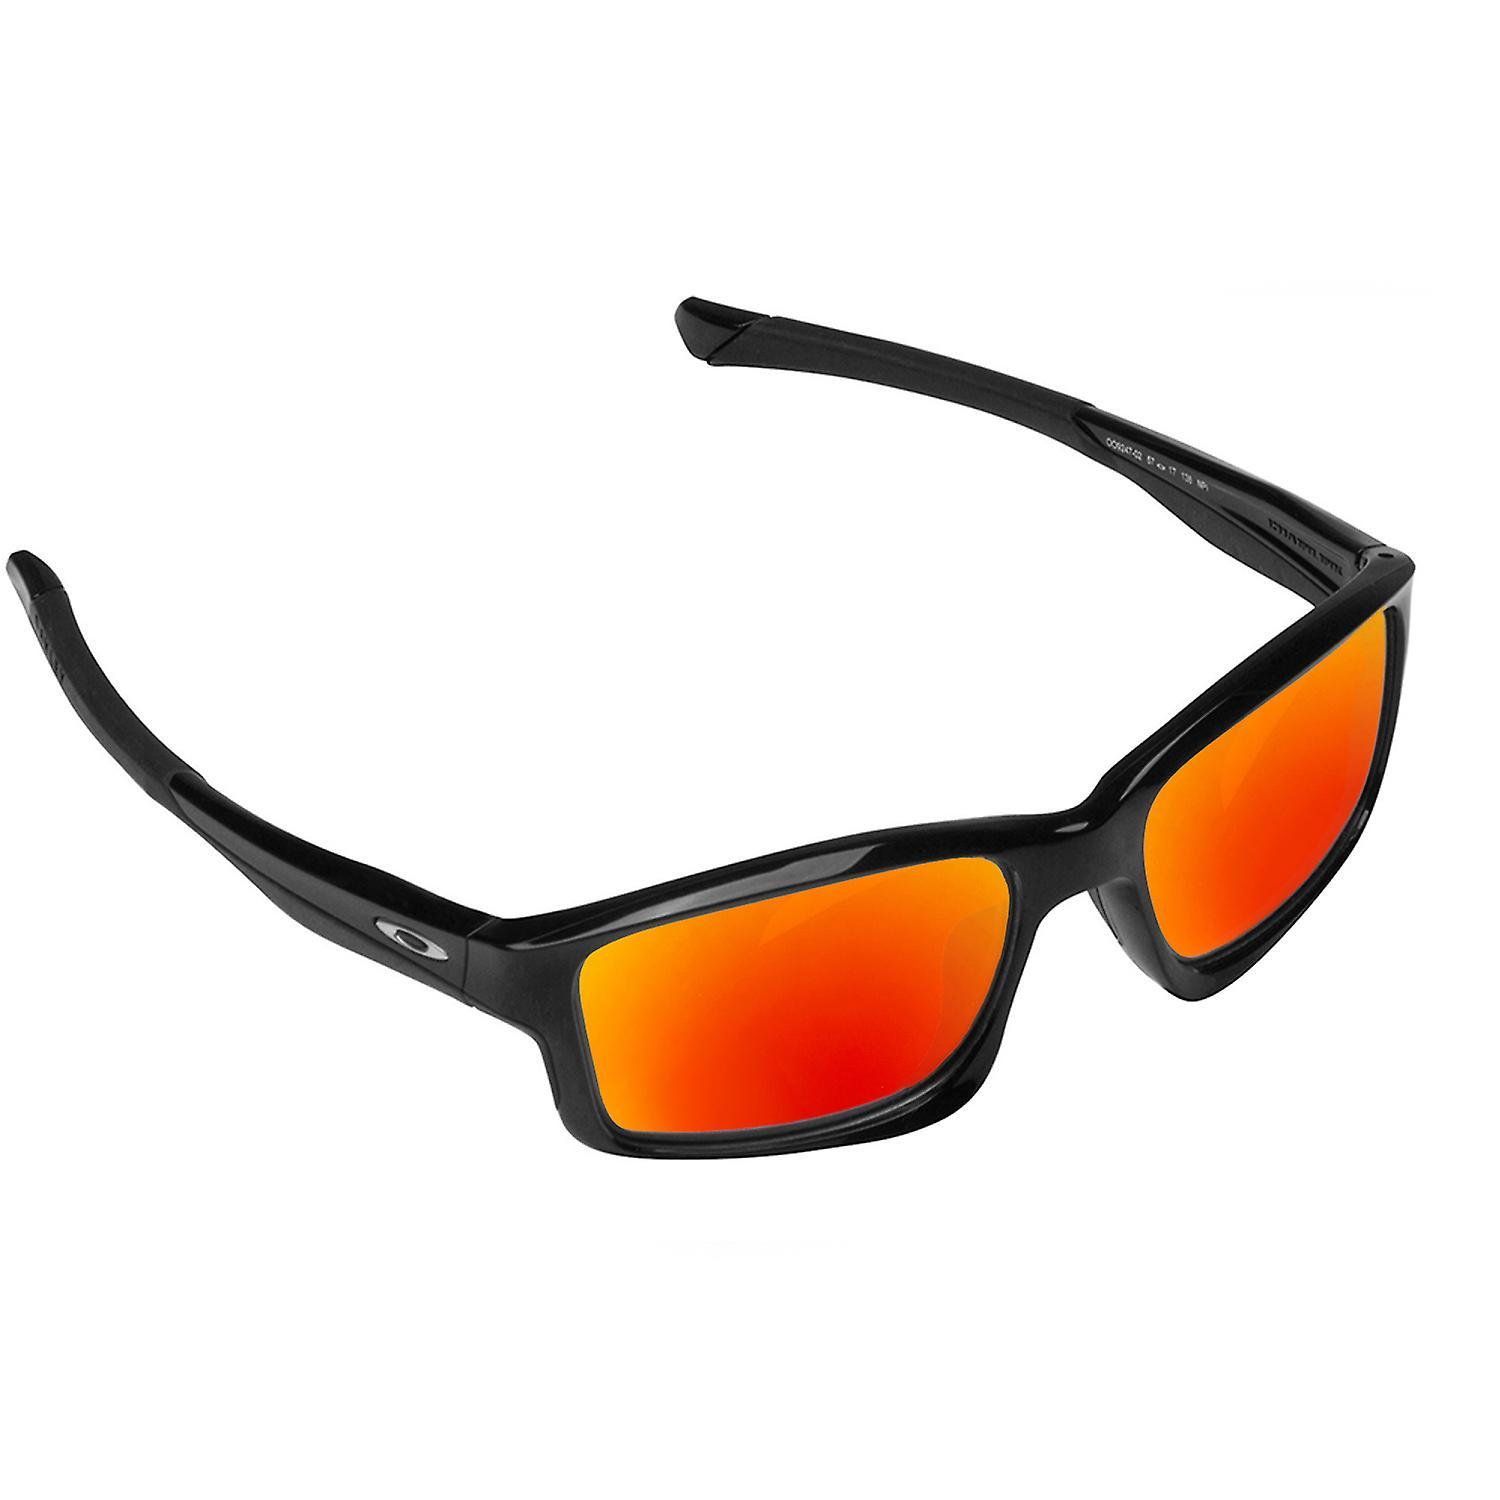 59f619bbb2 CHAINLINK Replacement Lenses Polarized Blue   Red by SEEK fits OAKLEY  Sunglasses